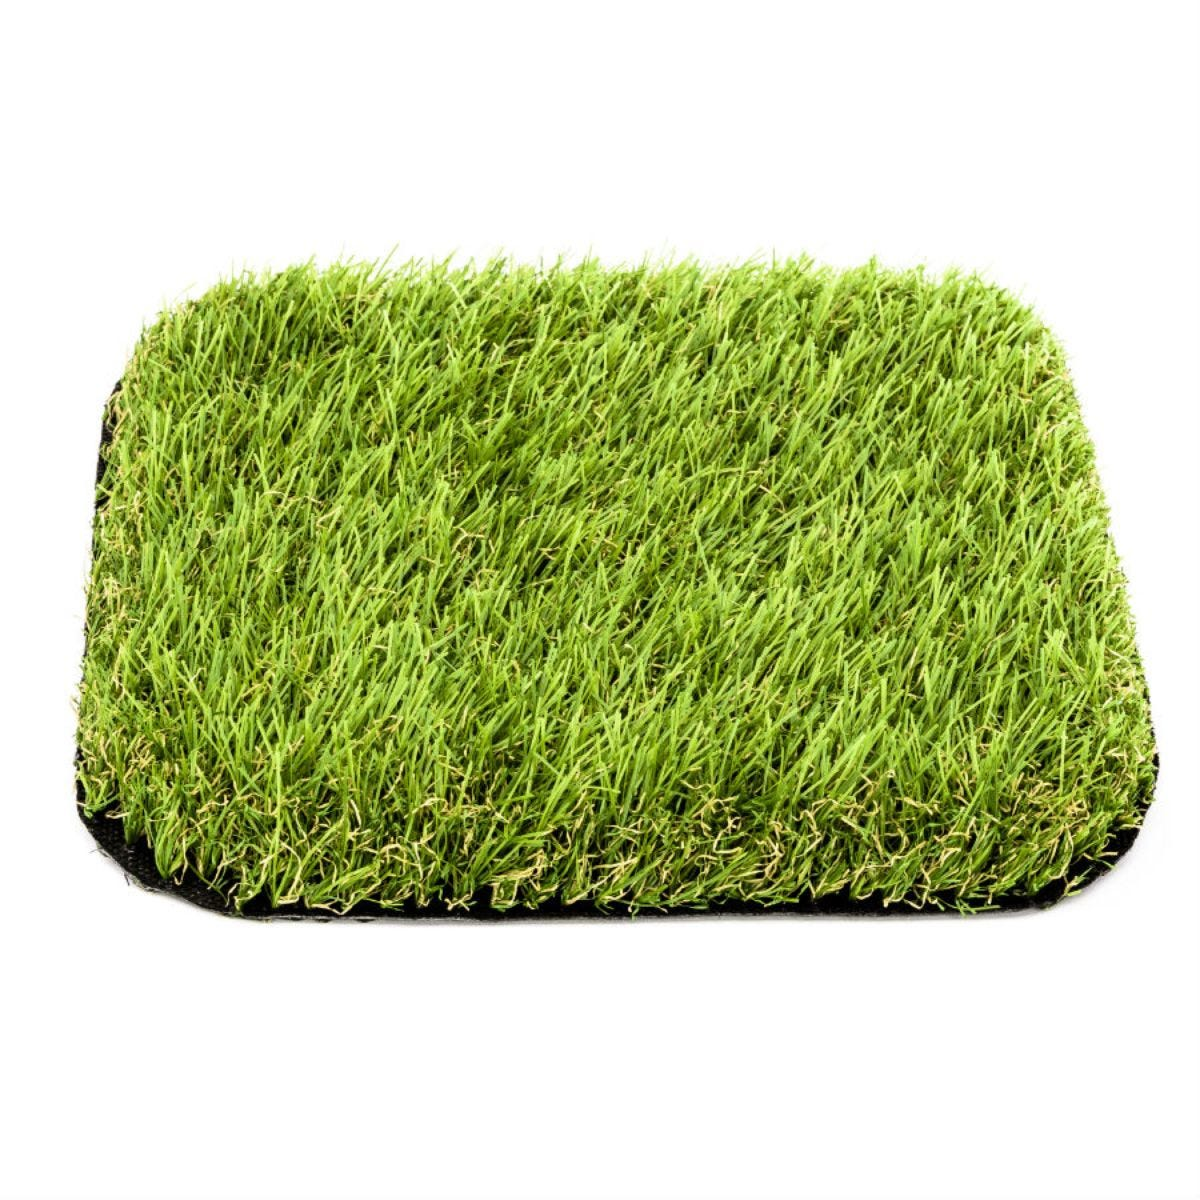 Belair Artificial Grass - 4 x 15m